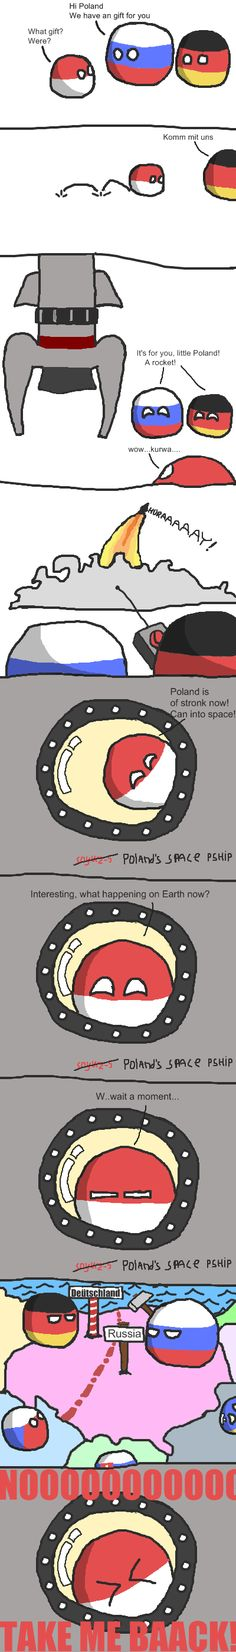 Should I point out that kurwa means whore in English? Poland Country, Country Art, Funny Photos, Funny Images, History Jokes, Military Memes, Political Memes, Seriously Funny, Comic Panels